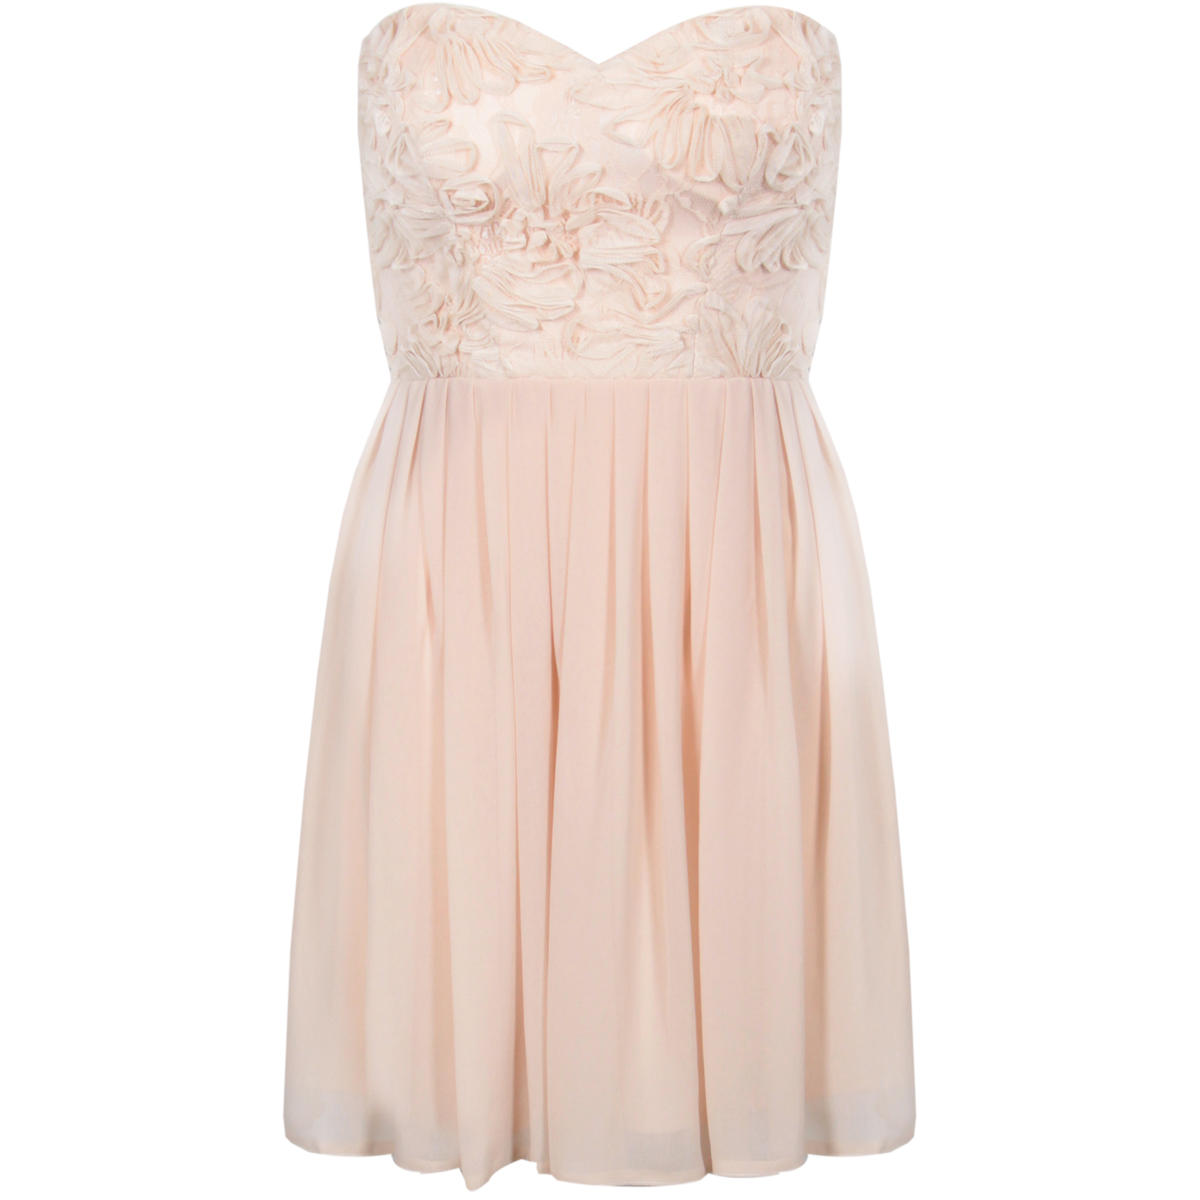 Nude Sweetheart Floral Lace Chiffon Dress Preview